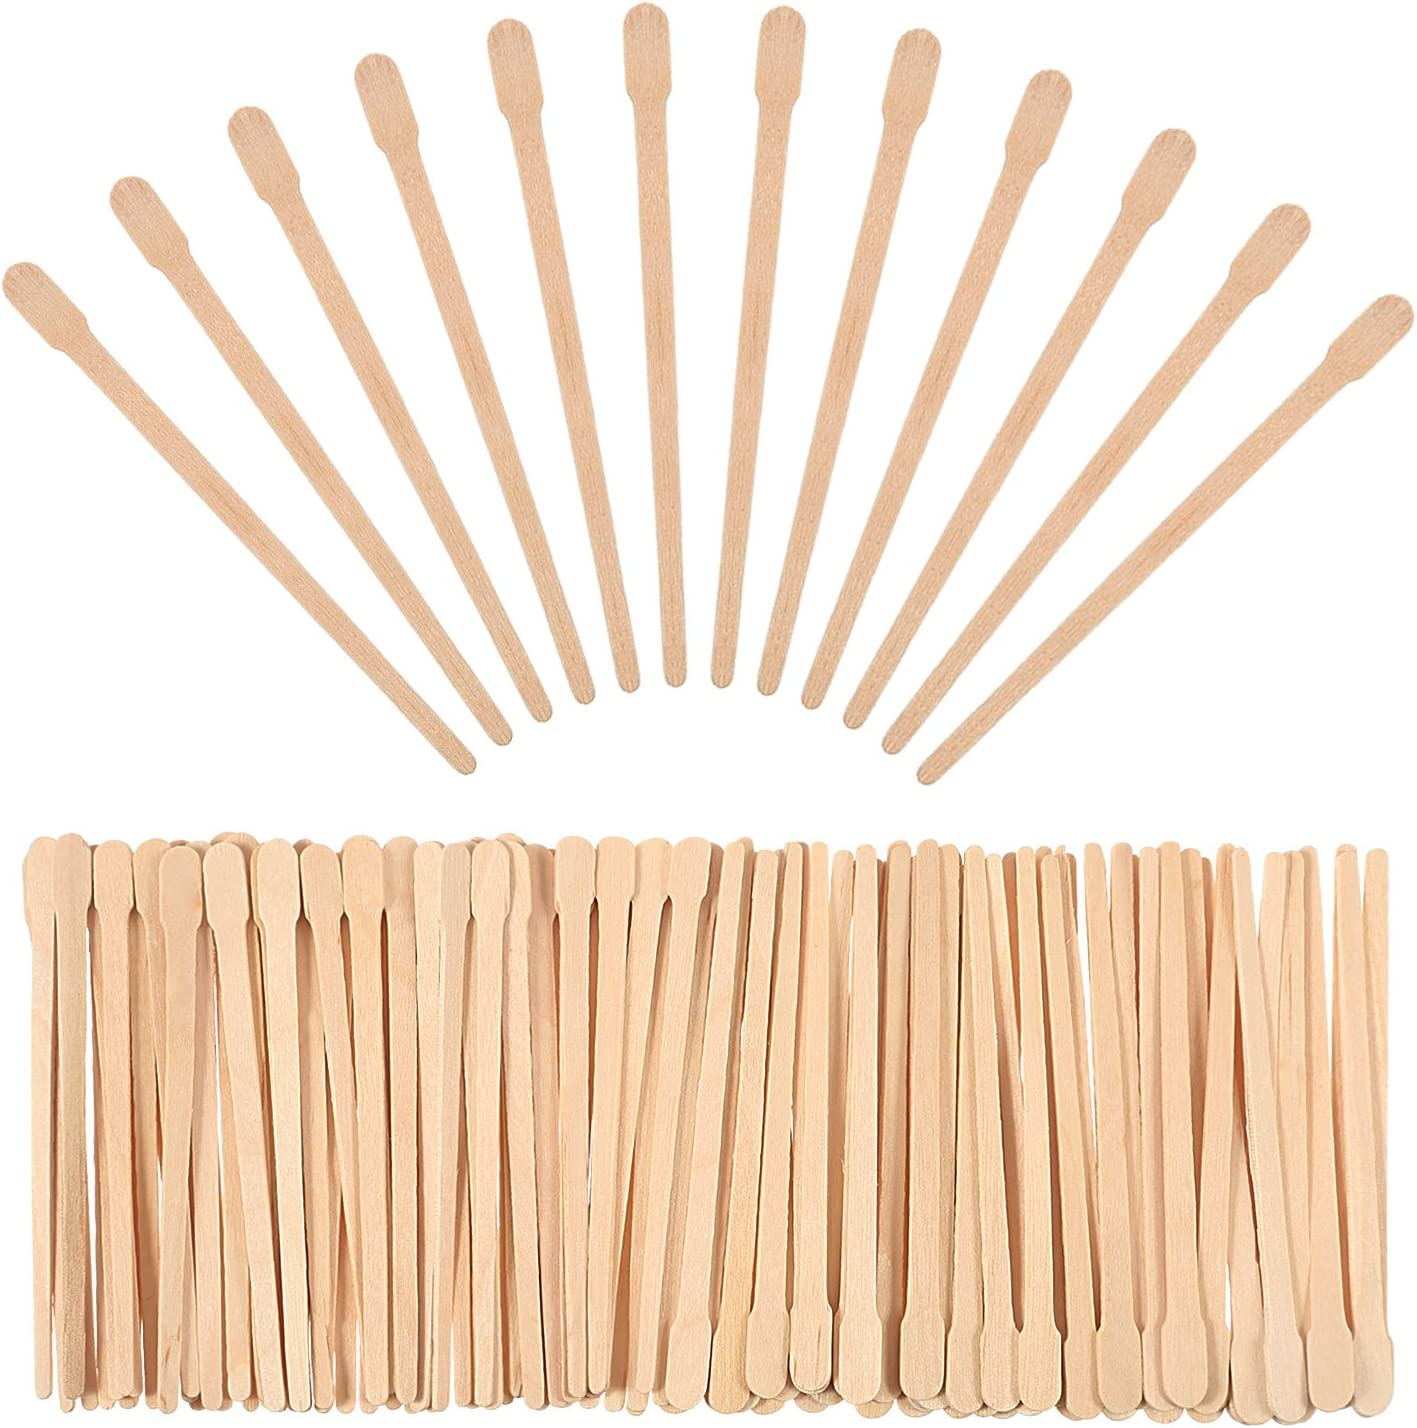 Bememo 500 Pack Wax Spatulas Wood Craft Sticks Small for Hair Removal Eyebrow Wax Applicator Sticks